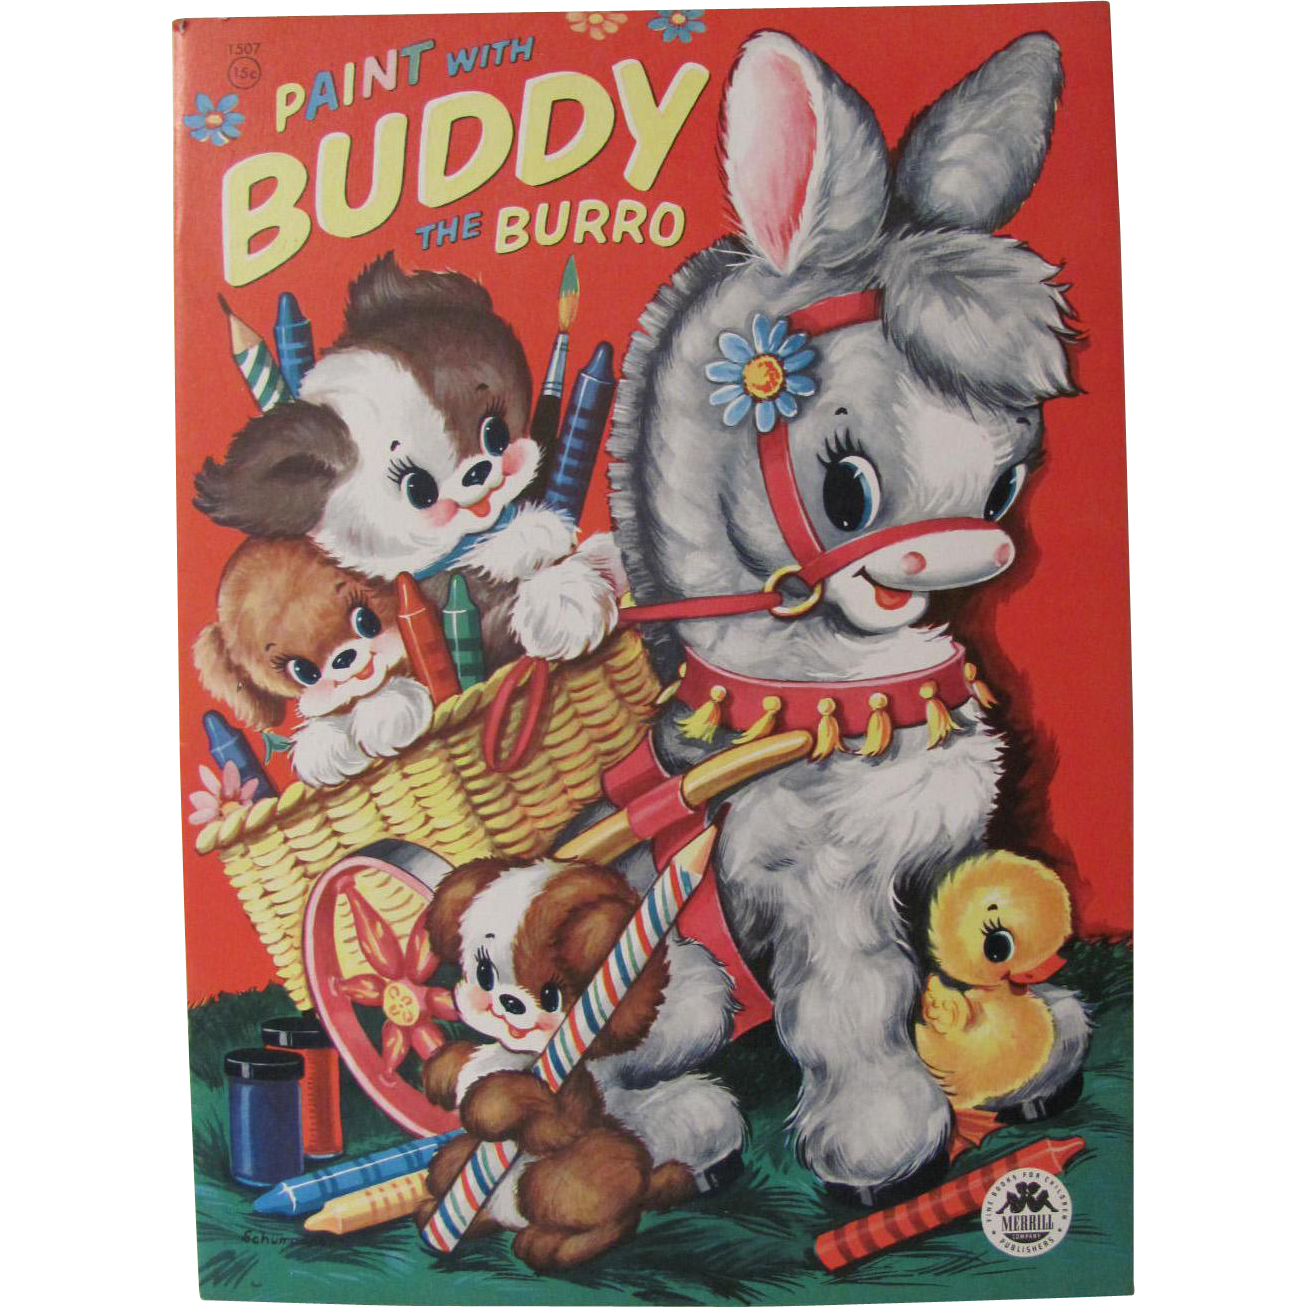 1956 Paint With Buddy the Burro Unused